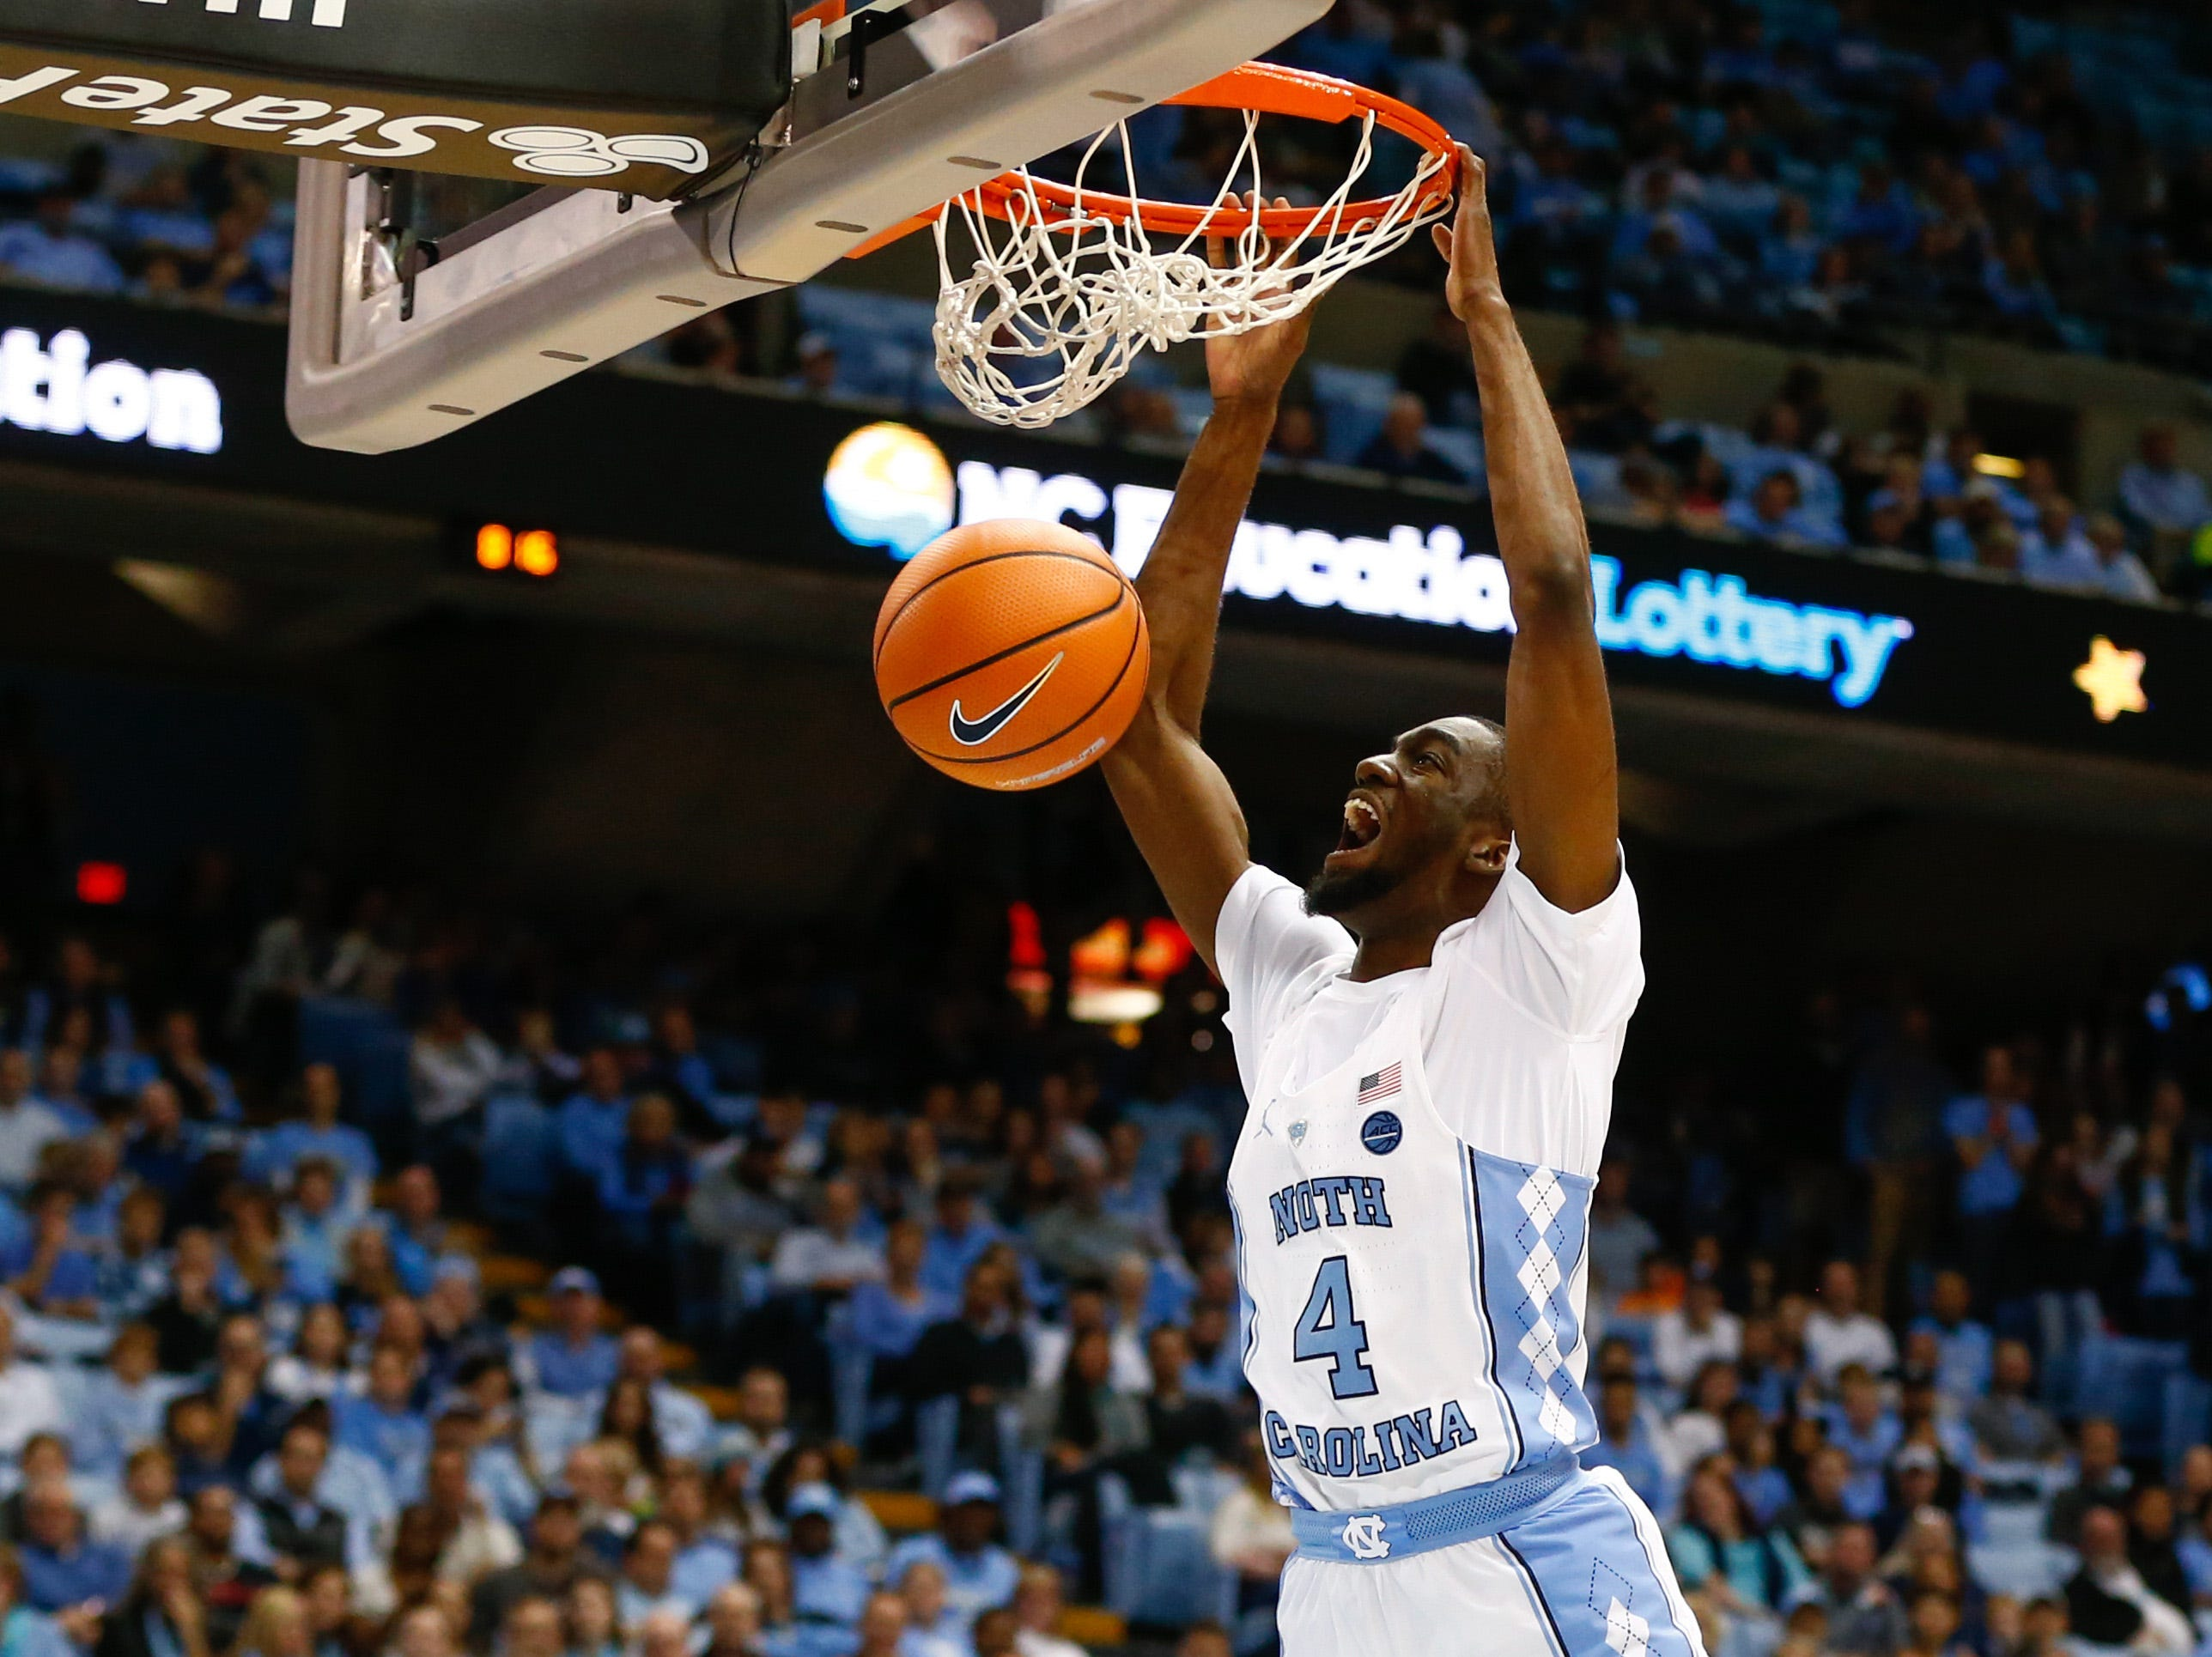 Dec 6, 2017; Chapel Hill, NC, USA; North Carolina Tar Heels guard Brandon Robinson (4) screams as he dunks the ball in the second half against the Western Carolina Catamounts at Dean E. Smith Center. Mandatory Credit: Jeremy Brevard-USA TODAY Sports